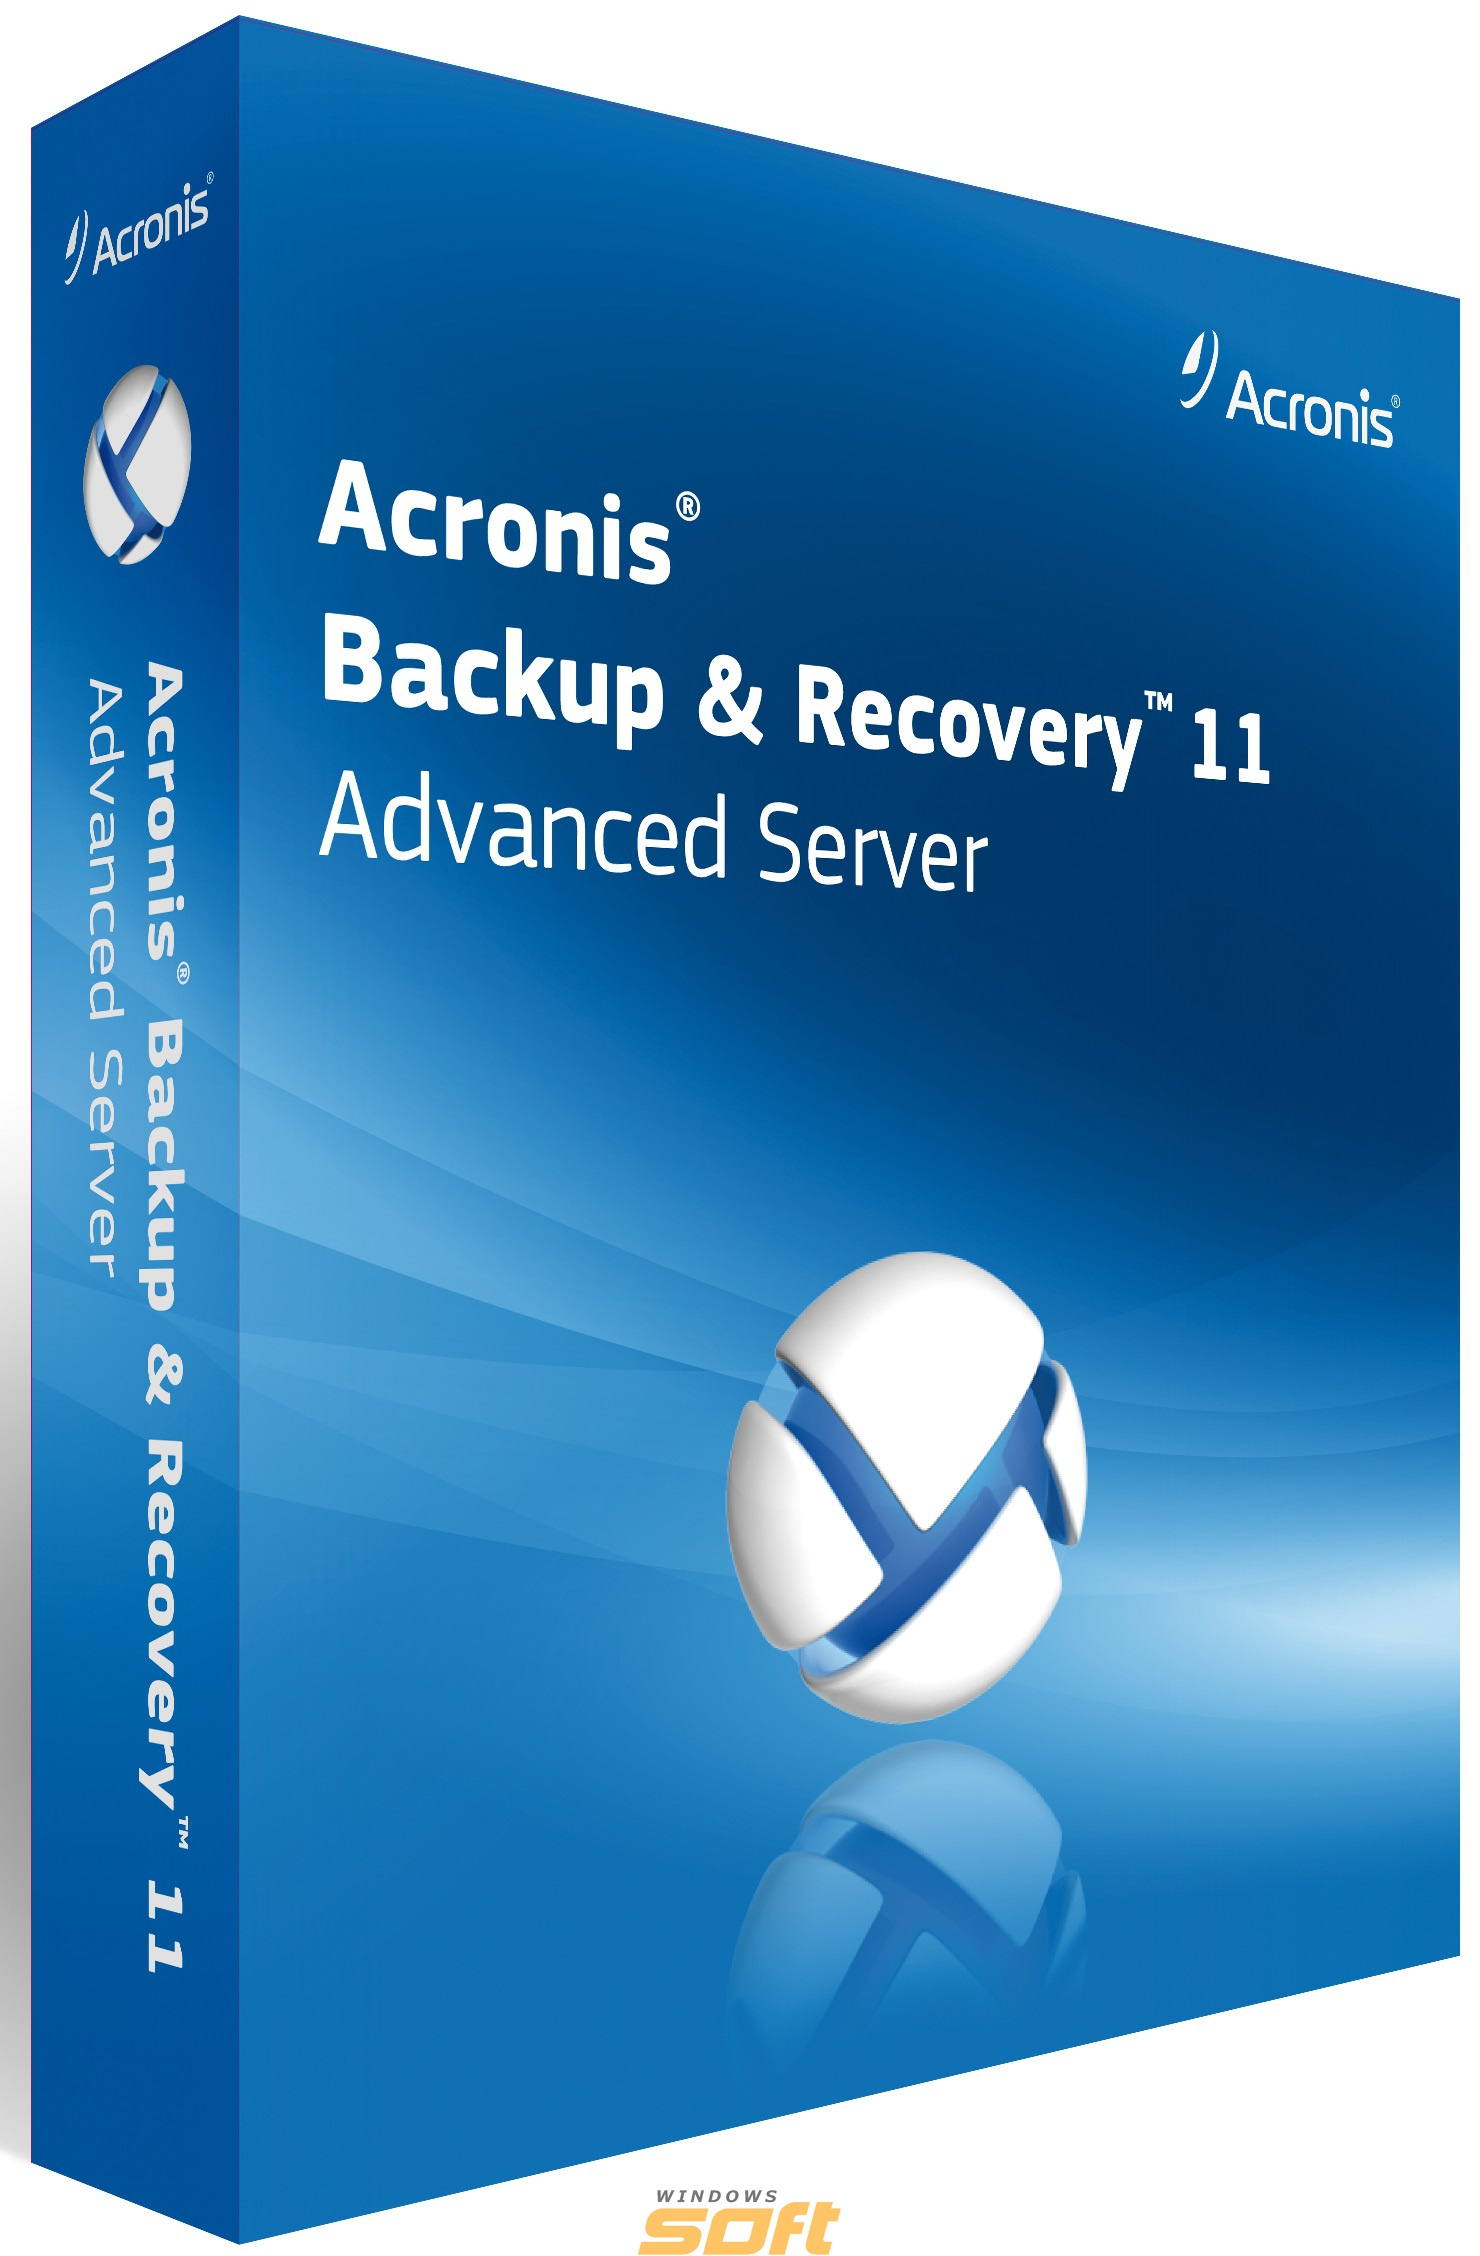 ������ Acronis Backup & Recovery 11 Advanced Server Bundle with Universal Restore and Deduplication ������� �� ������ ������������������� ������ �� ����� ����������������� ������ TUEMUPRUF21 �� ��������� ����